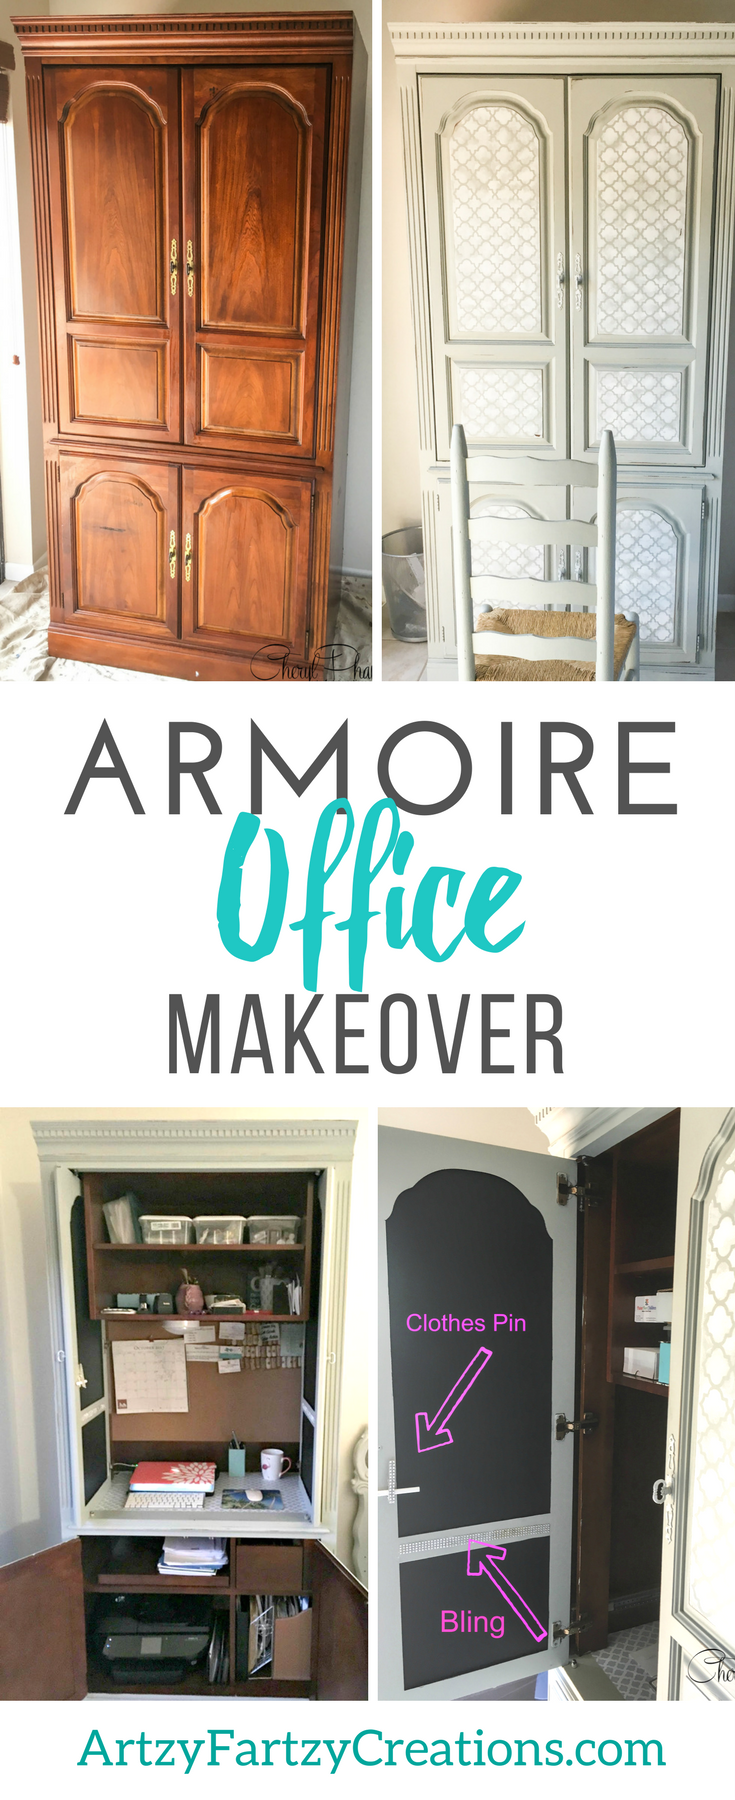 Etonnant Hereu0027s A Functional Armoire Office Makeover. An Office In An Armoire Is A  Perfect Solution If You Donu0027t Have Dedicated Home Office Space And